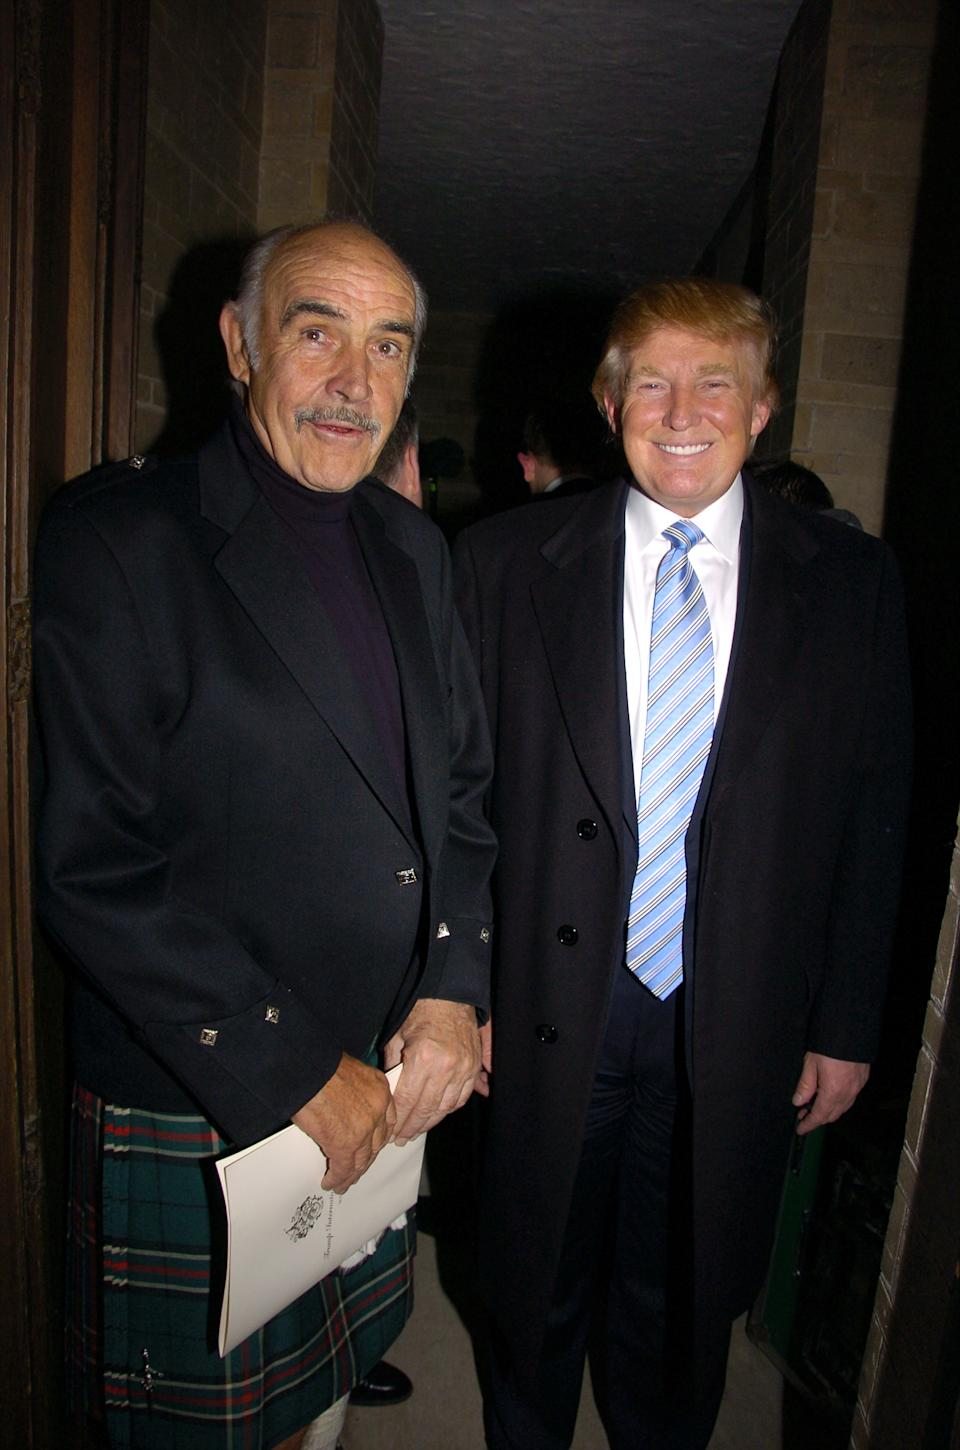 UNITED STATES - APRIL 03:  Sean Connery (left) and Donald Trump are at the Synod House at St. John the Divine Cathedral Garden for the Johnnie Walker Dressed to Kilt fashion show and charity event.  (Photo by Richard Corkery/NY Daily News Archive via Getty Images)